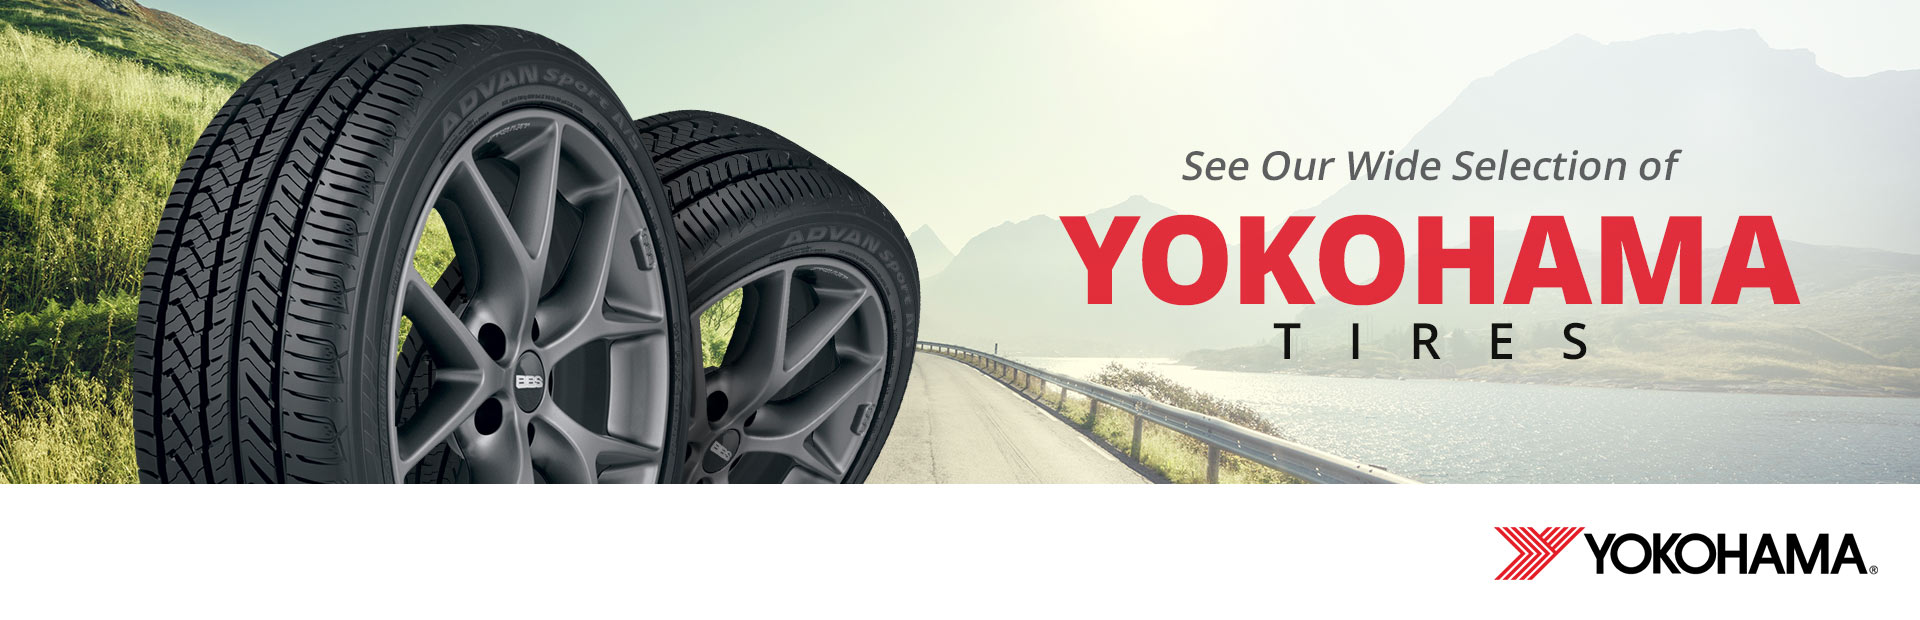 See our wide selection of Yokohama tires!